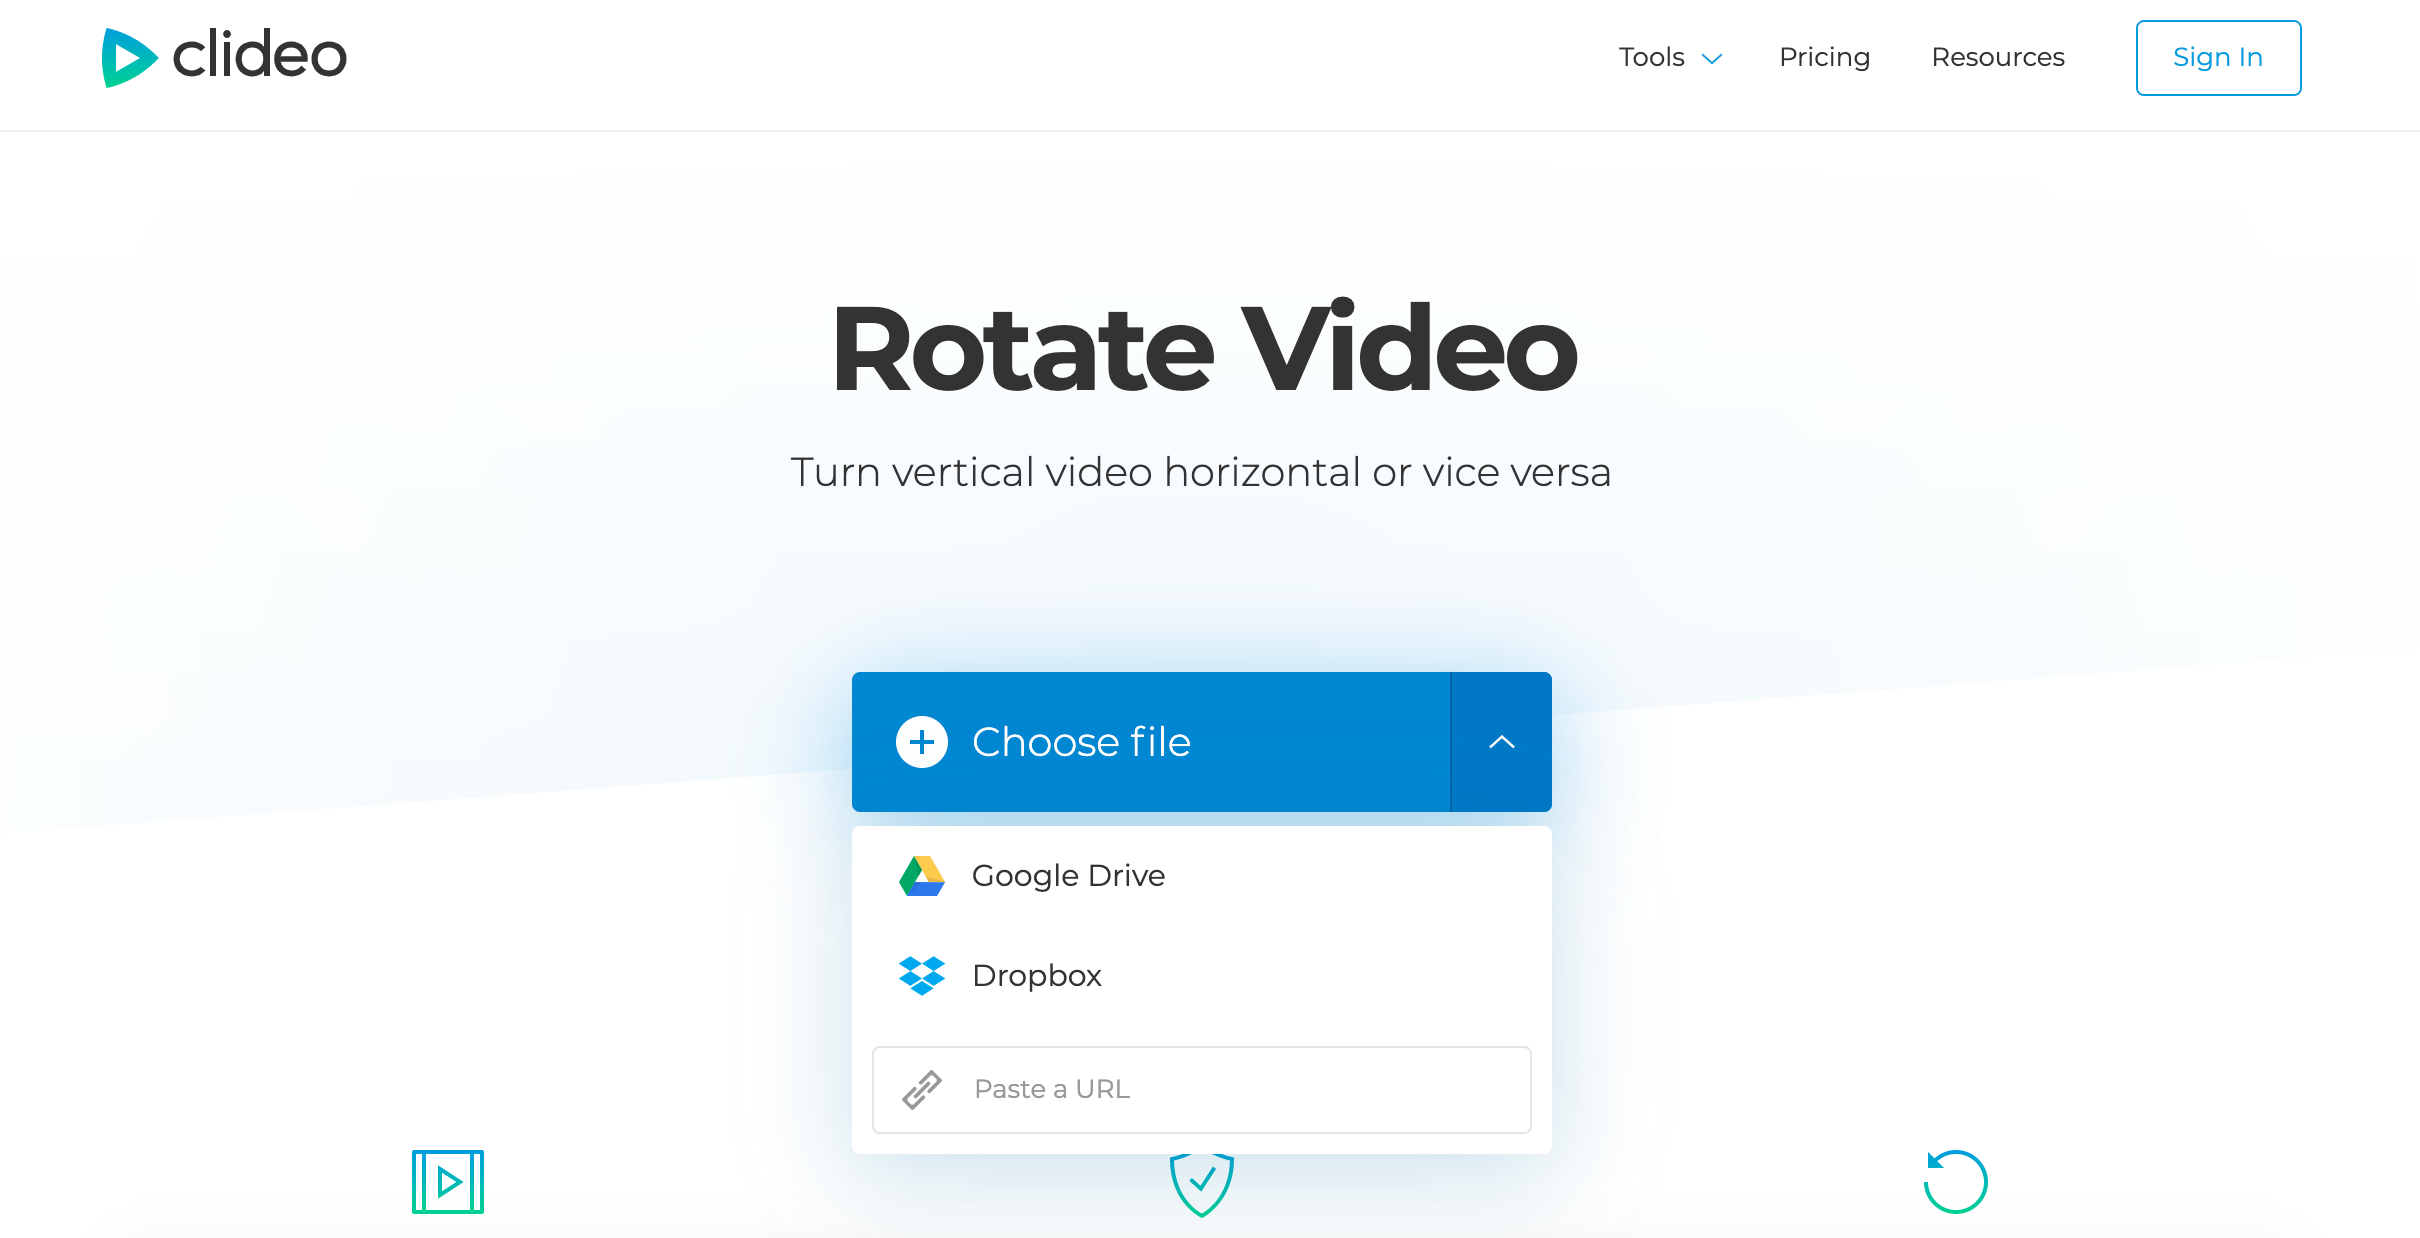 Add video to rotate on Windows